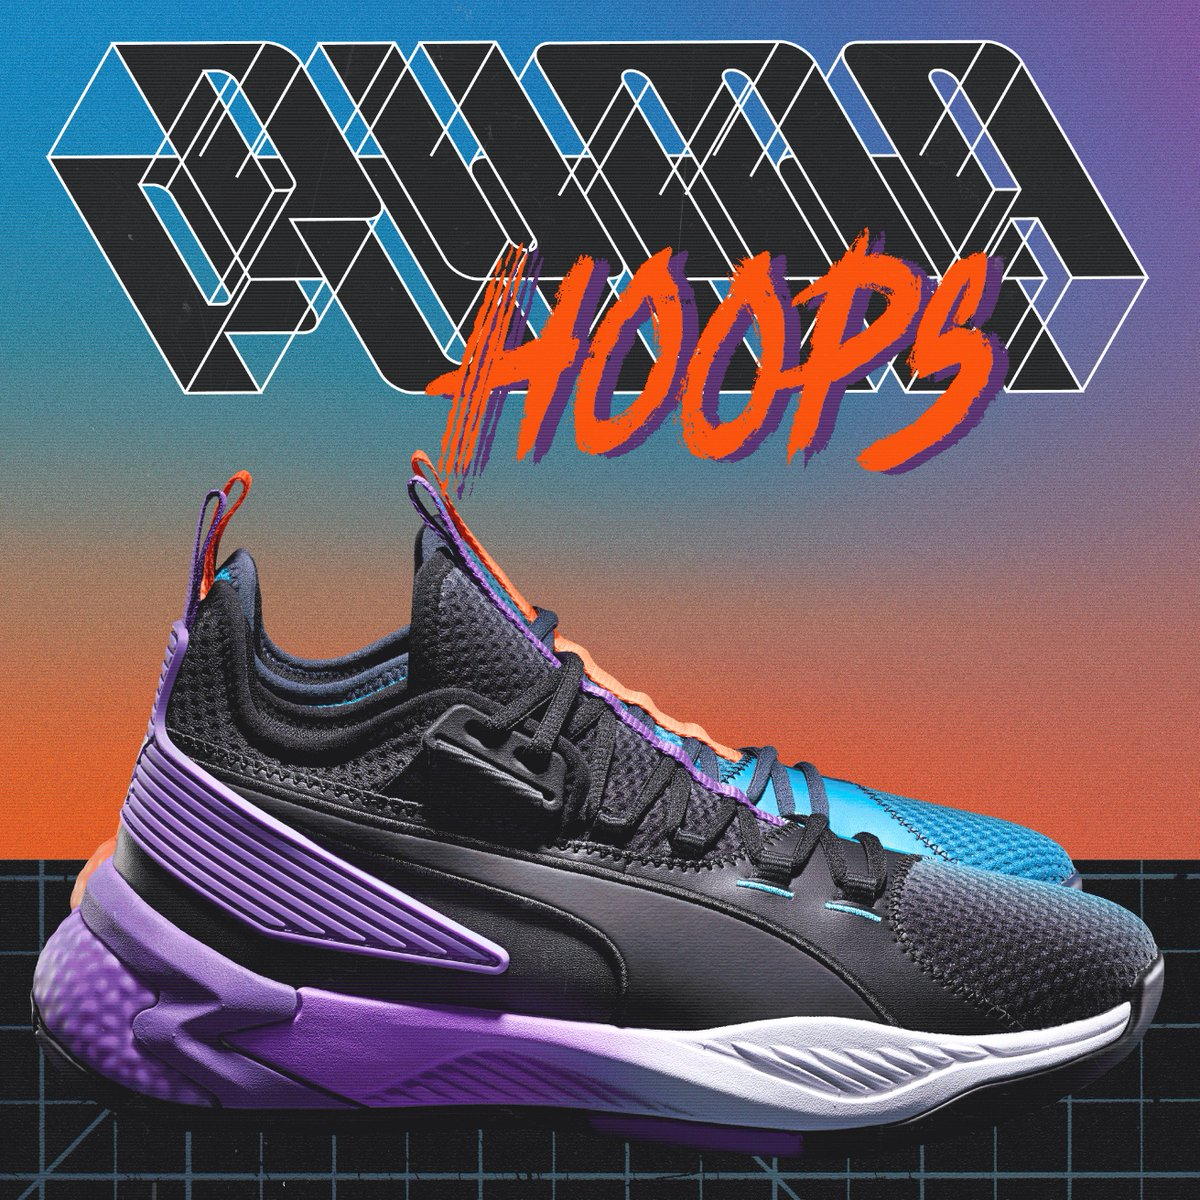 With custom cushion tech for peak responsiveness on the court, and a '90s-inspired style, the new @pumahoops UPROAR CHARLOTTE is built for the street, made for the court. Cop it here 👉 https://trib.al/Etdh63F